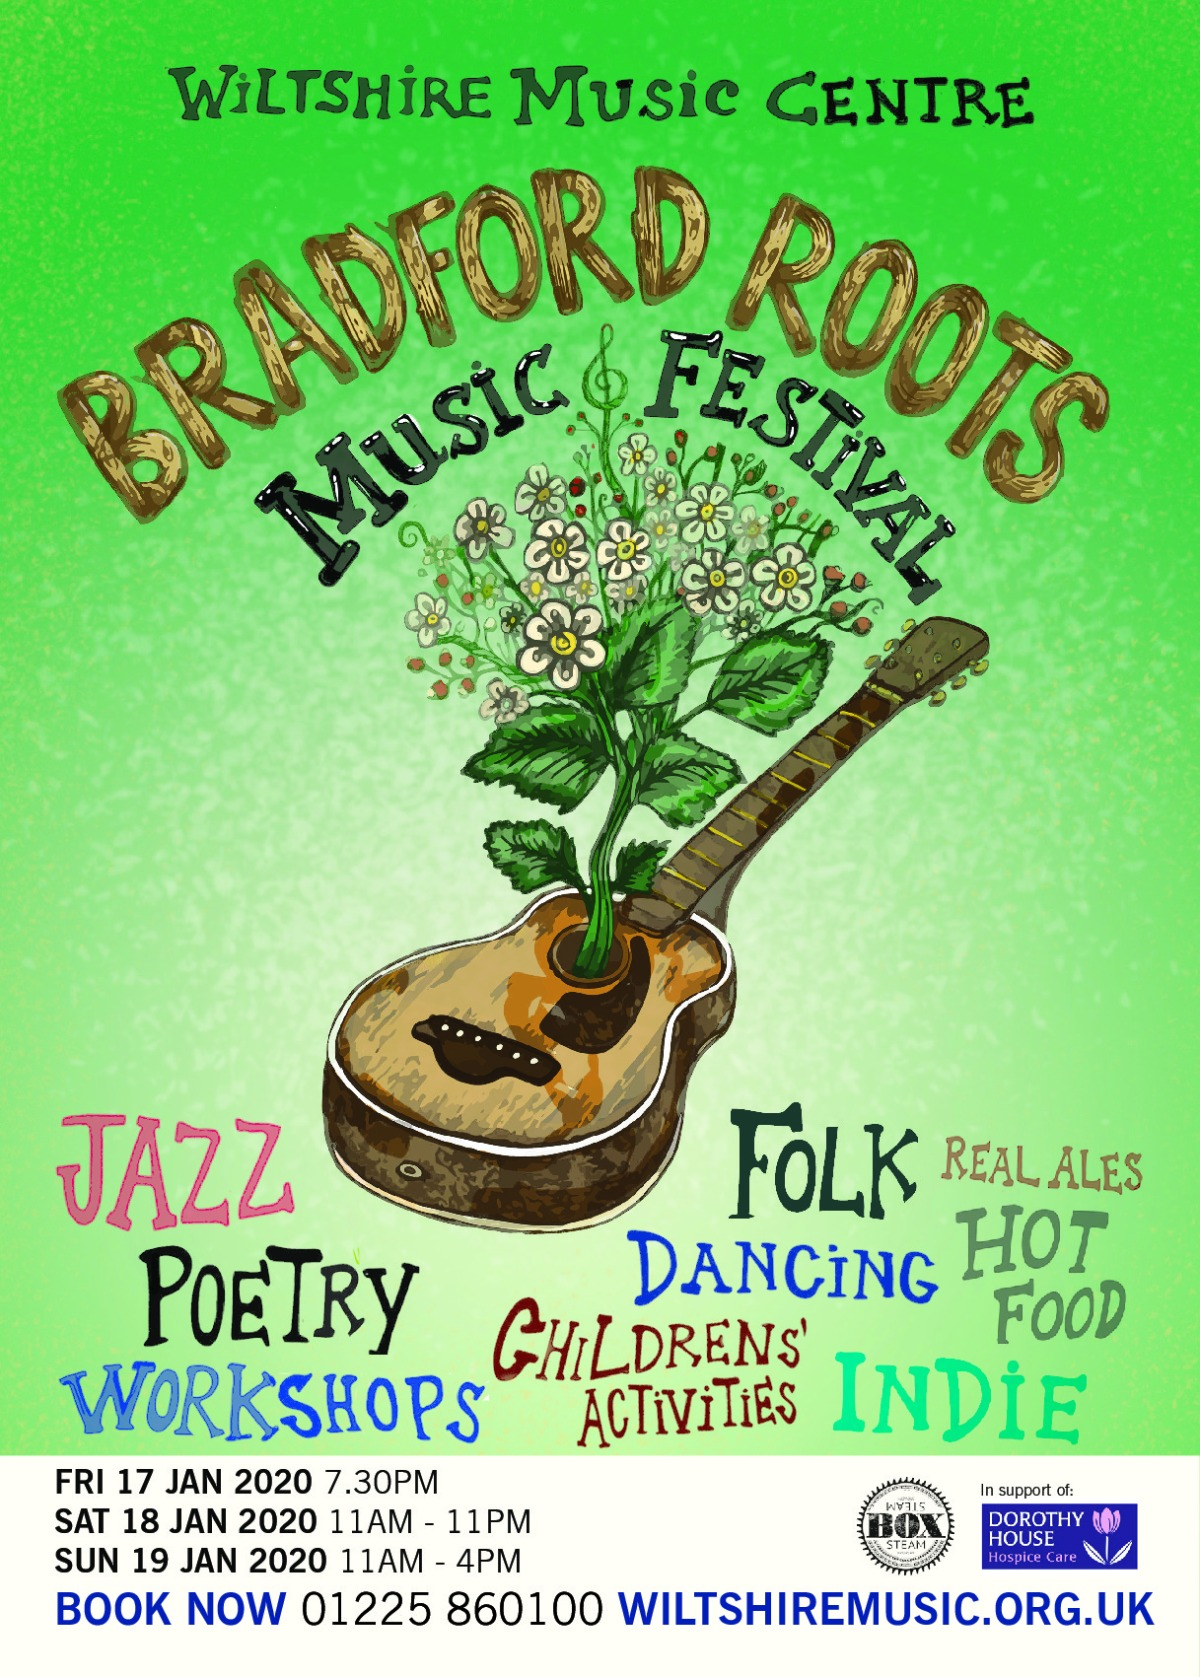 PREVIEW: Bradford Roots Music Festival 17th – 19th January 2020 @ Wiltshire Music Centre,Bradford